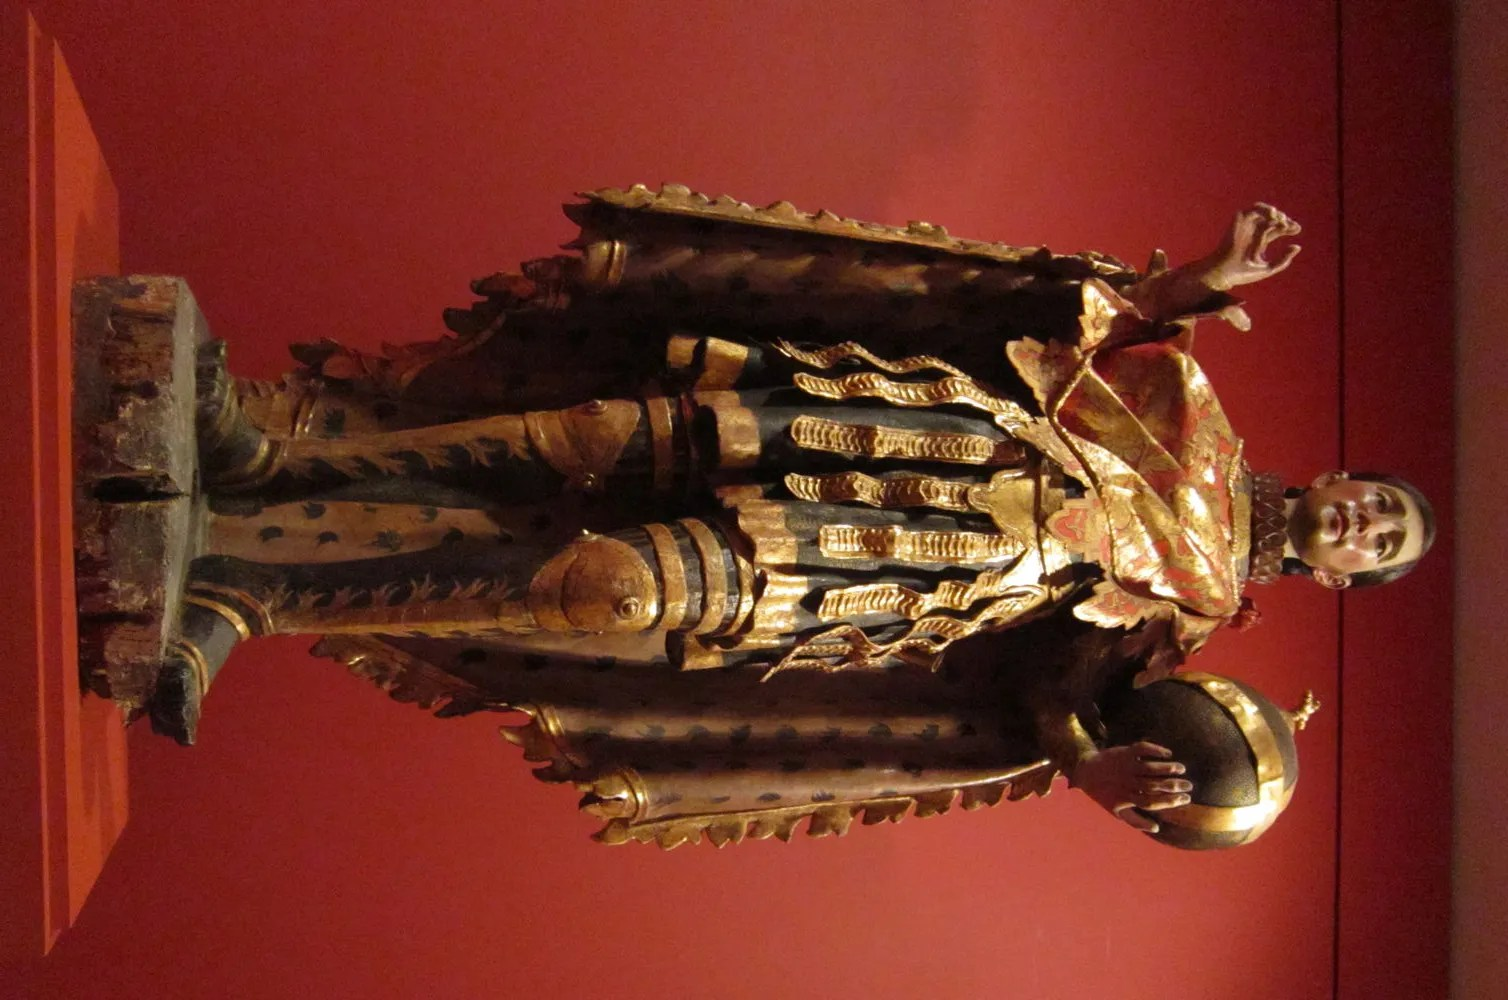 Spanish saint sculpture, Denver Art Museum